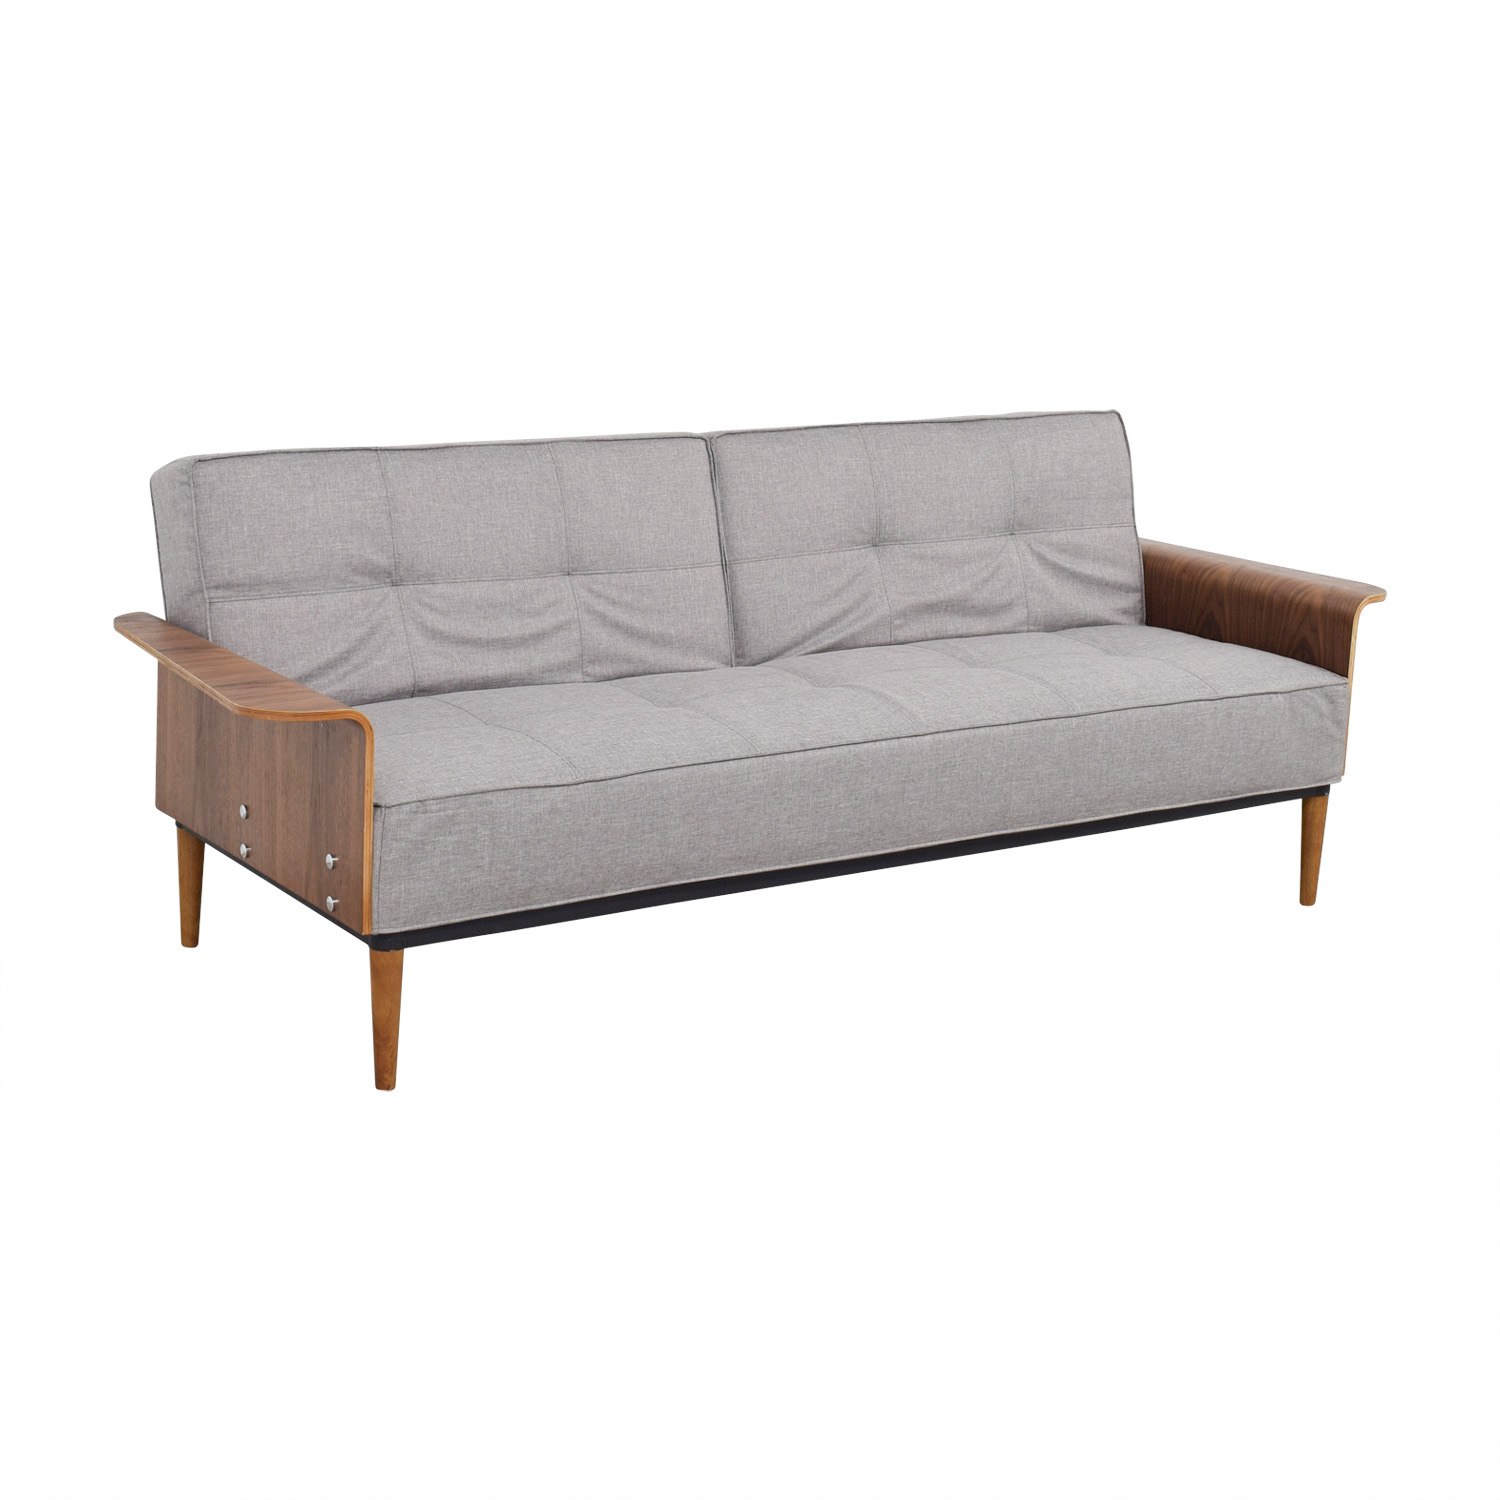 Inmod Inmod Bjorg Tufted Light Grey Sofabed Sofas